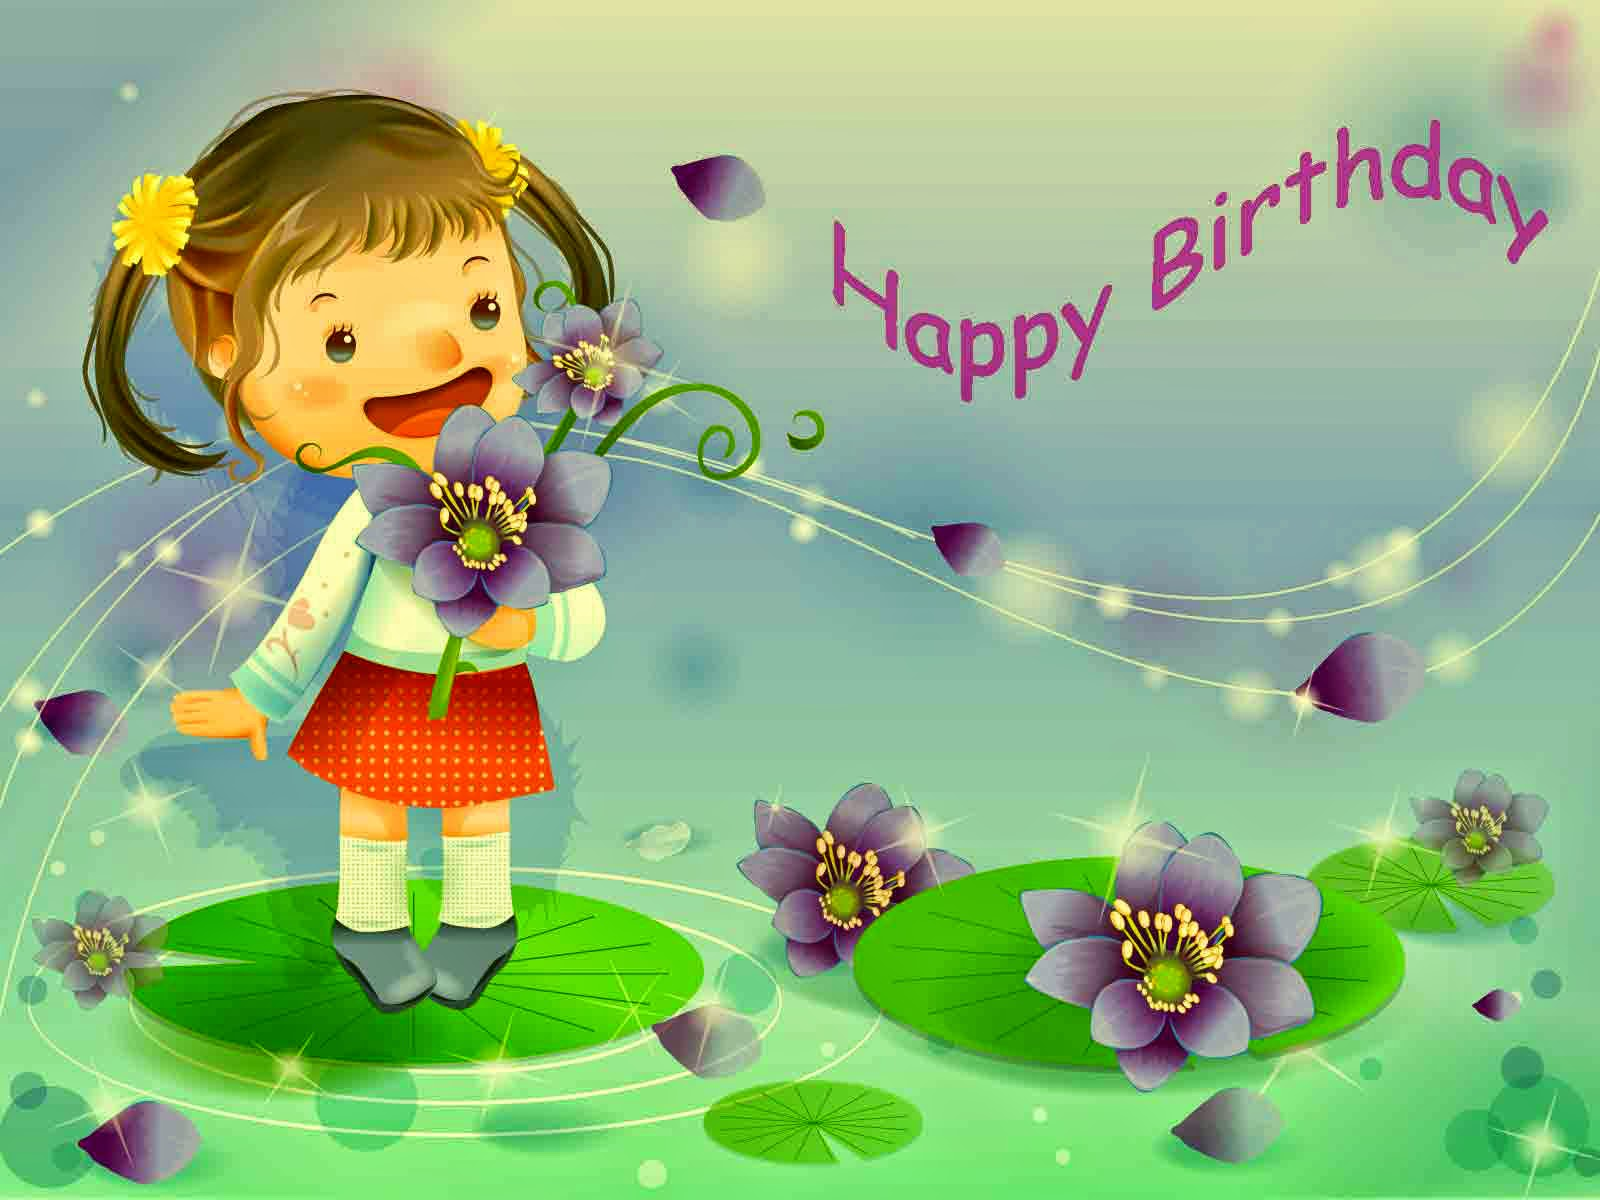 Happy Bday Wishes With Pics And Music Festival Cute Baby Girls Musical Cards For